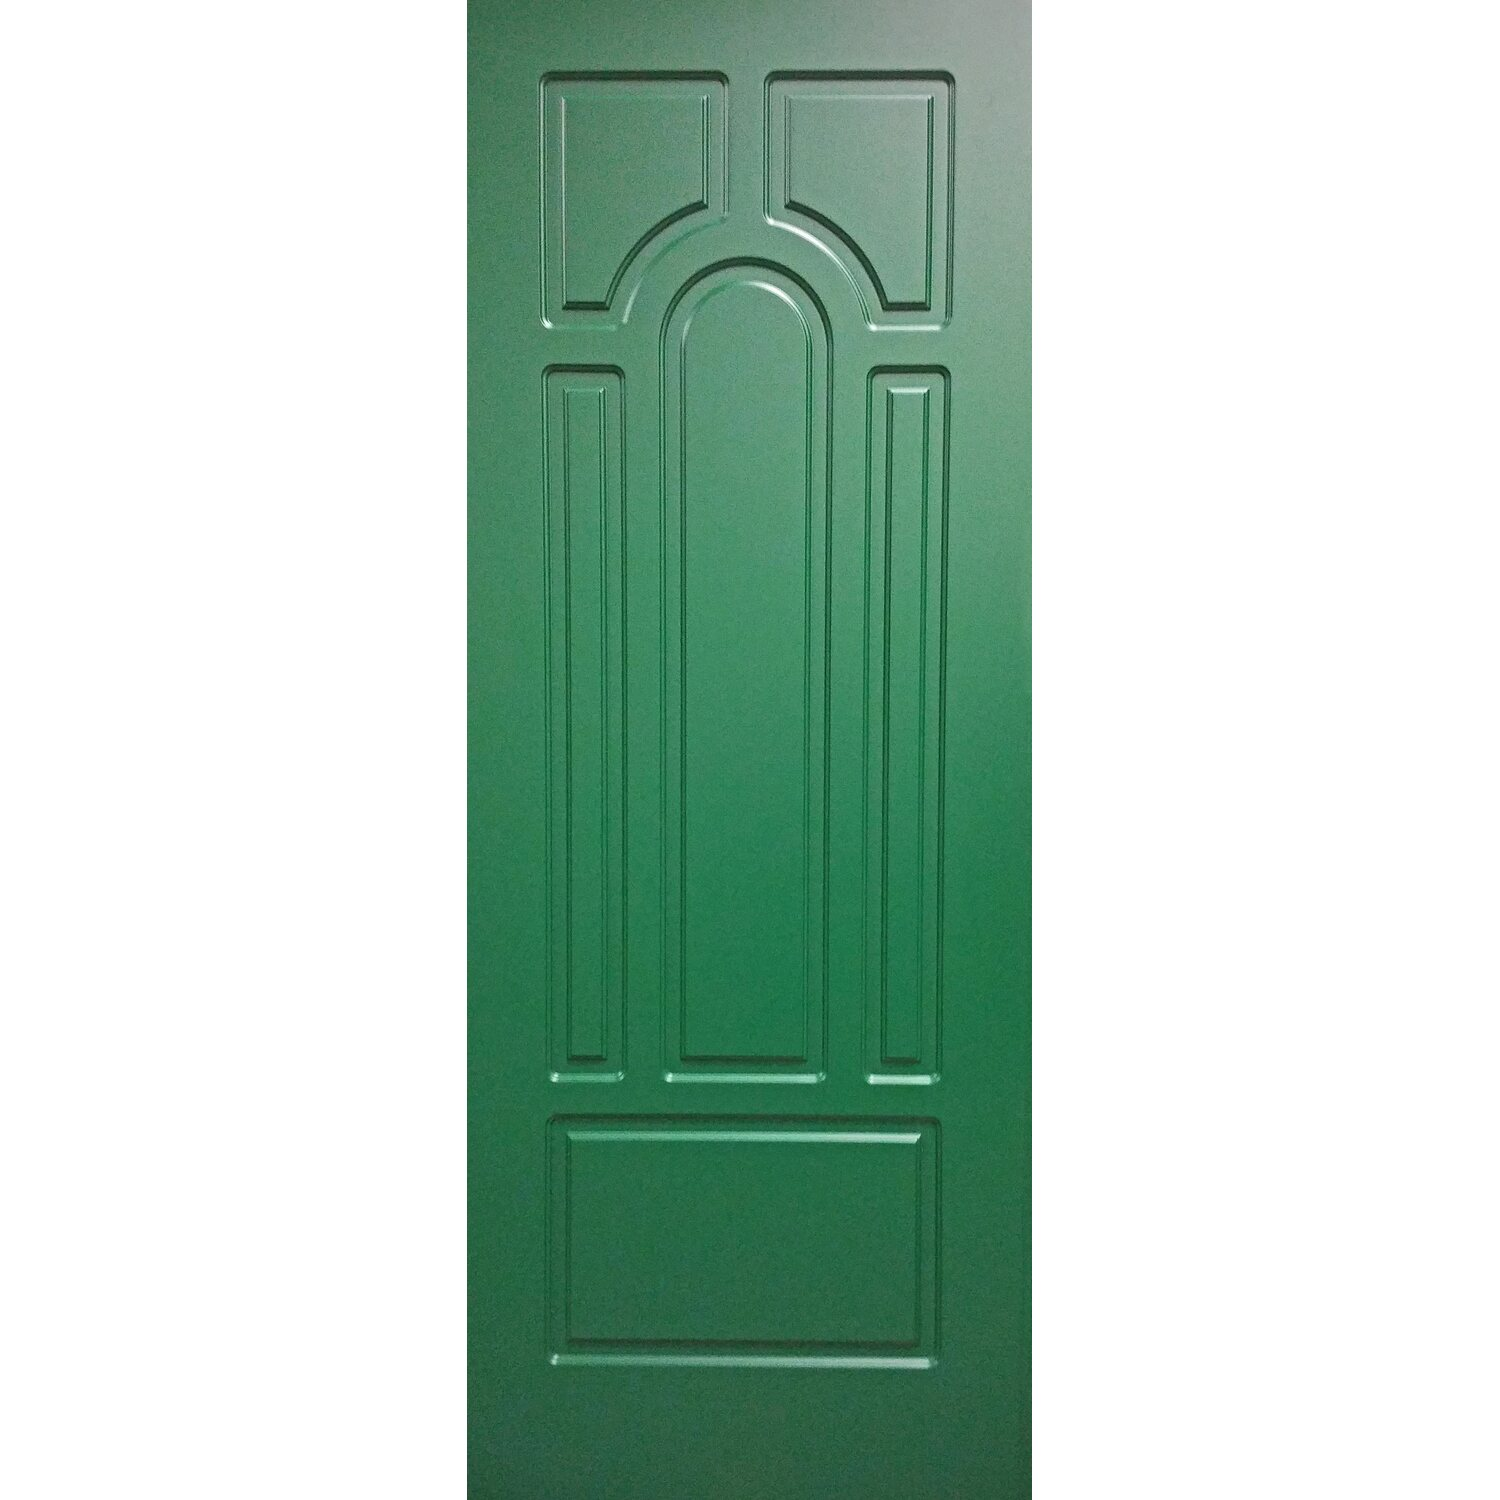 Pannello per porta blindata verde acquista da obi for Finestre pvc obi